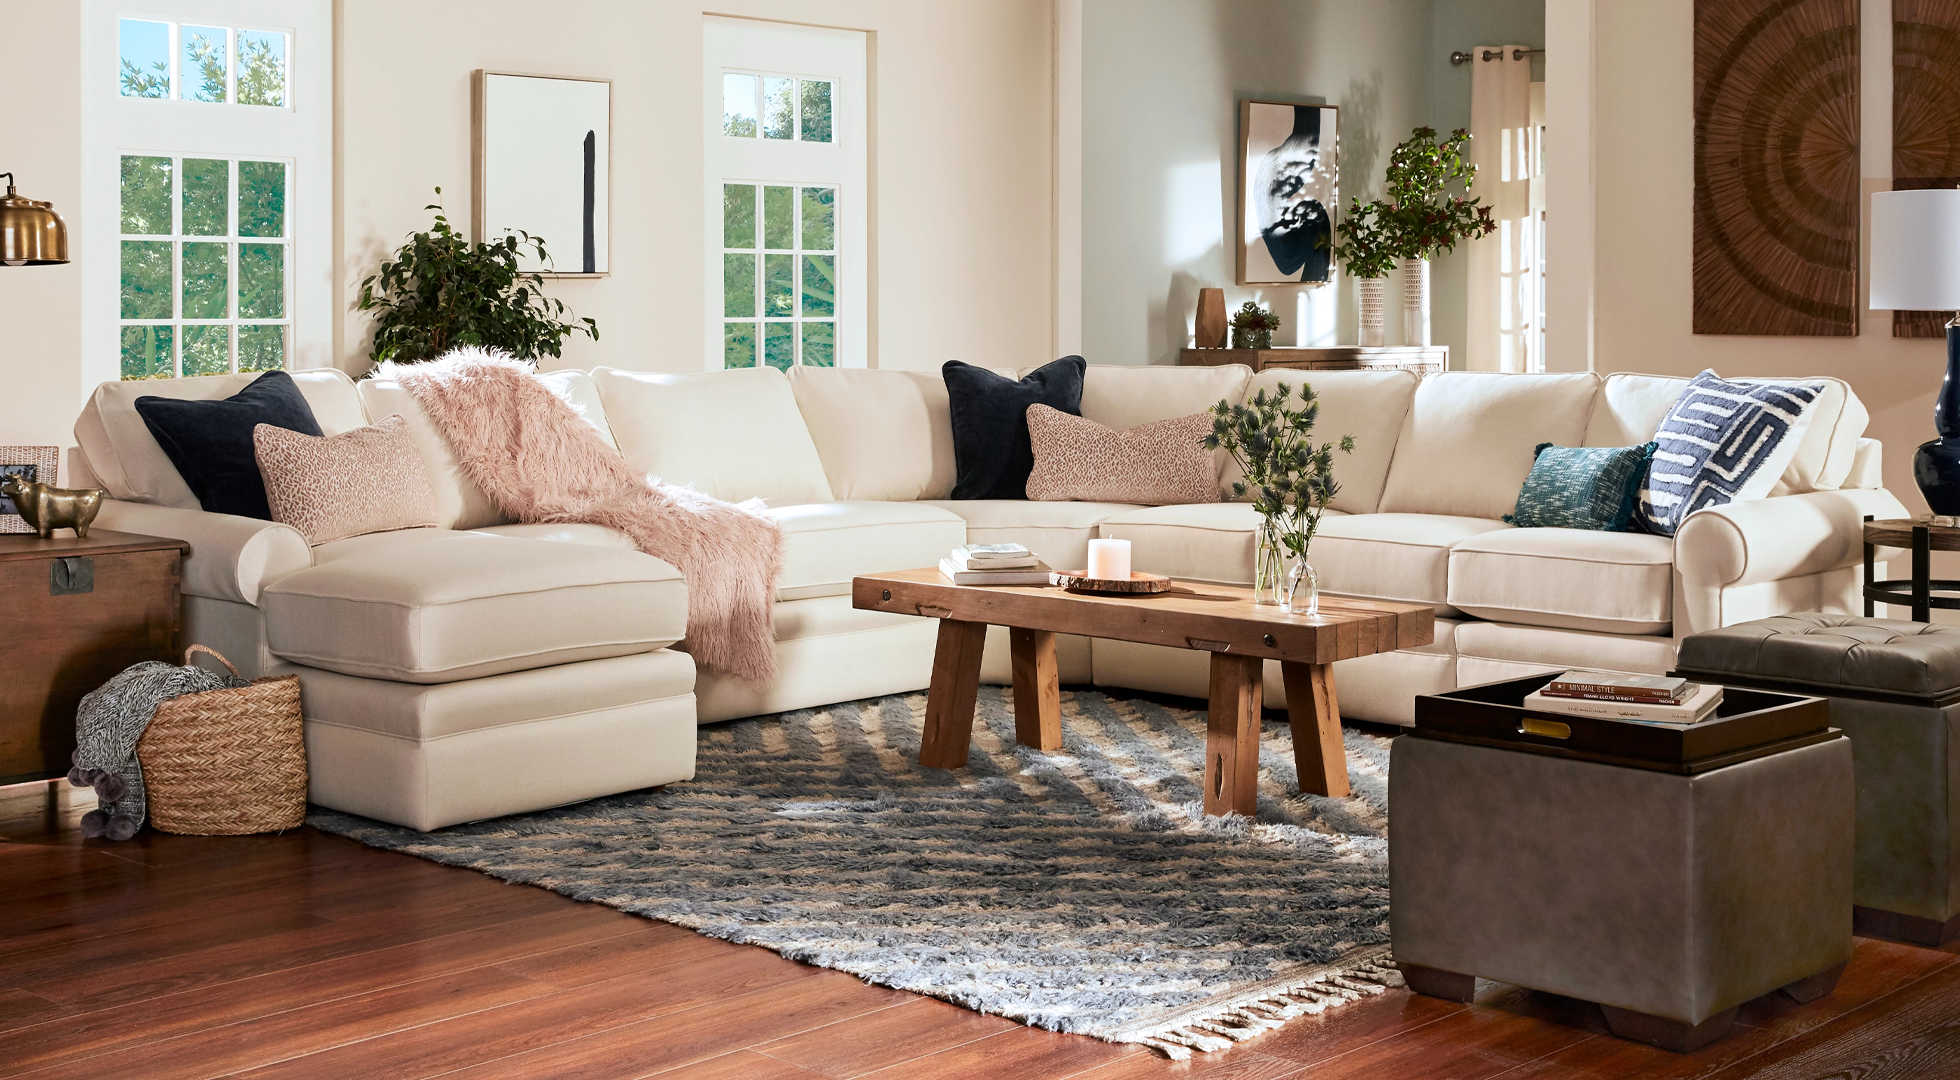 Living room with Ridgemont Sectional, Brentwood High Leg Reclining Chair, Isabella Table Lamp, and Logan Circle Ottoman